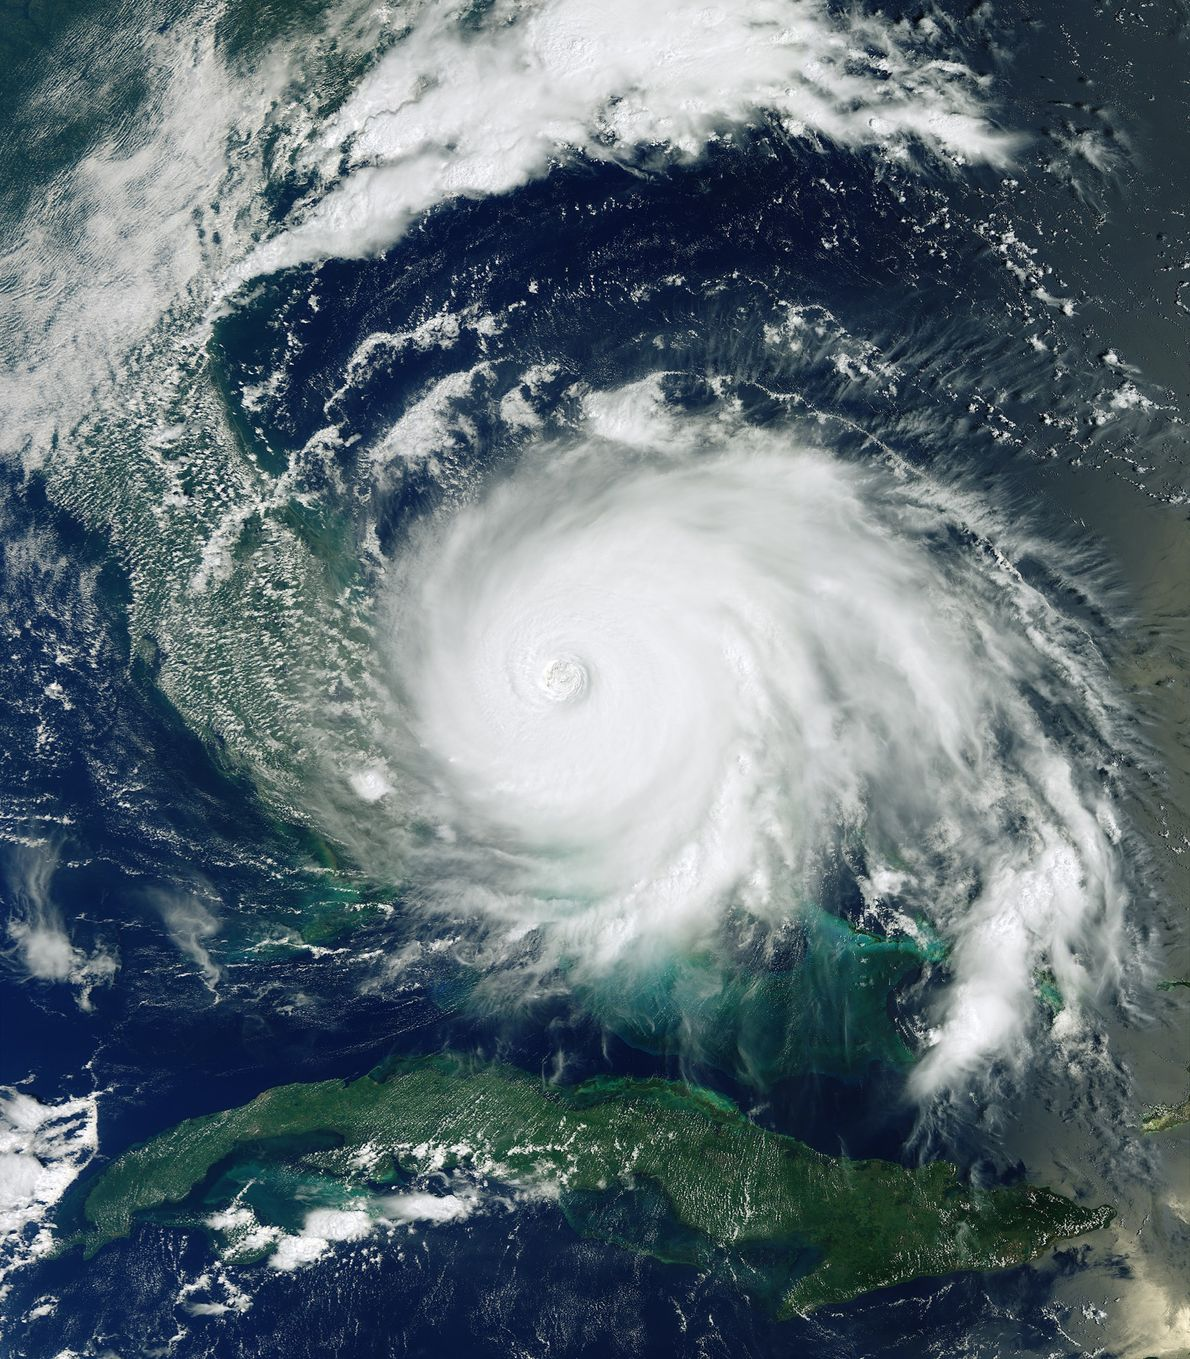 Hurricane Dorian slammed into the Bahamas in September as one of the most powerful Atlantic storms ...